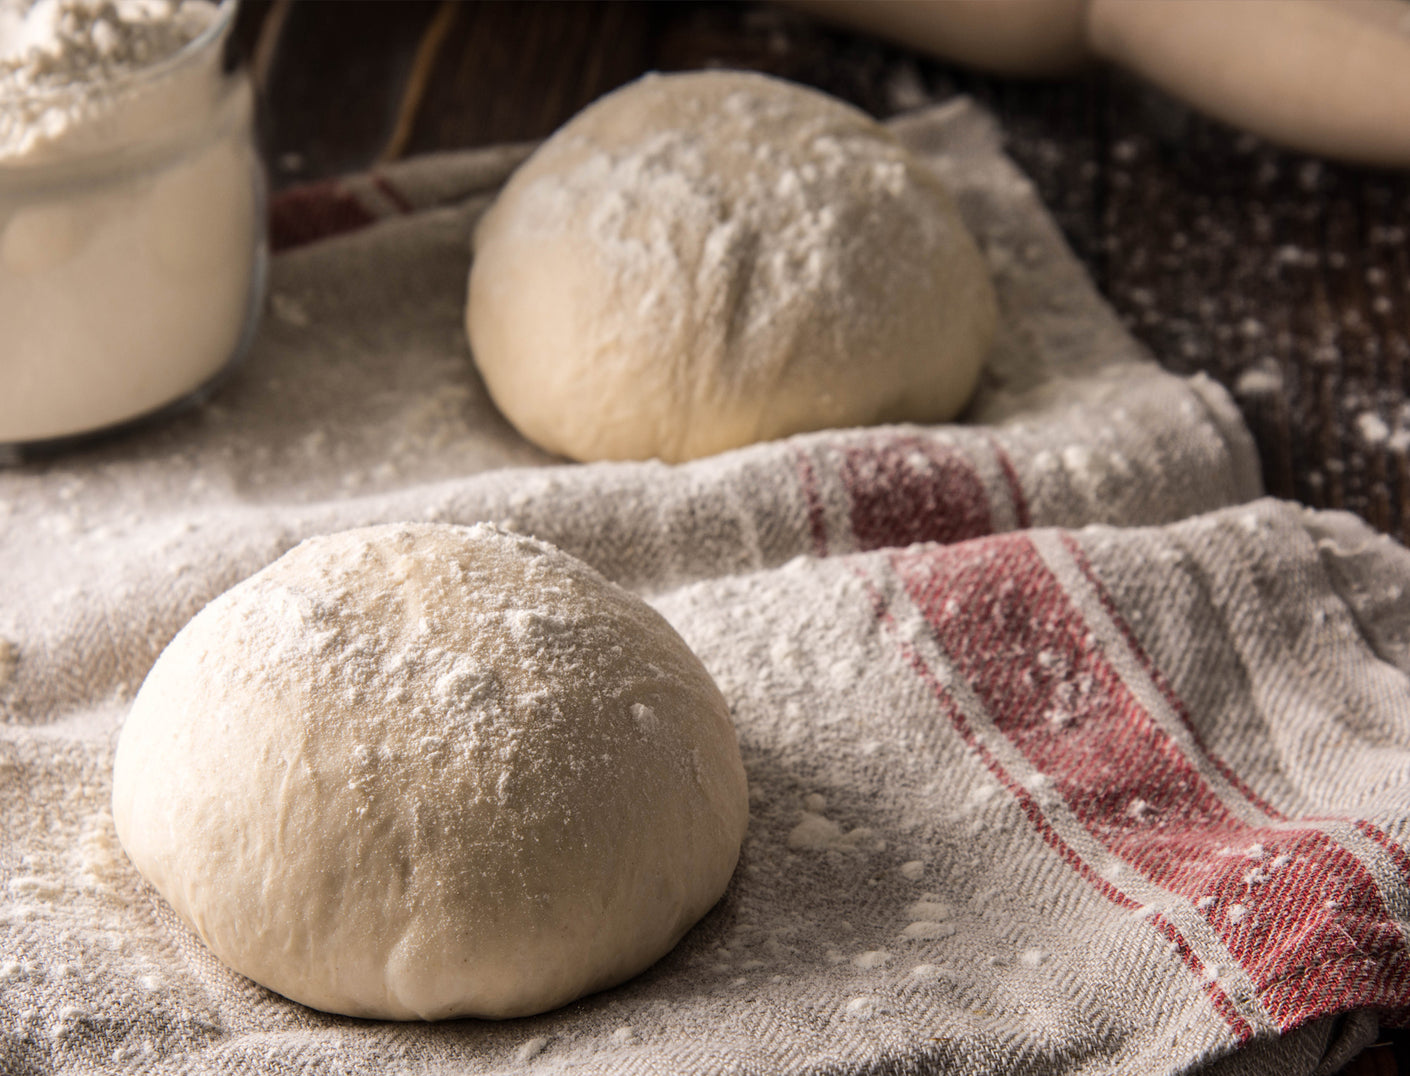 Organic sour dough pizza bases from Delivita